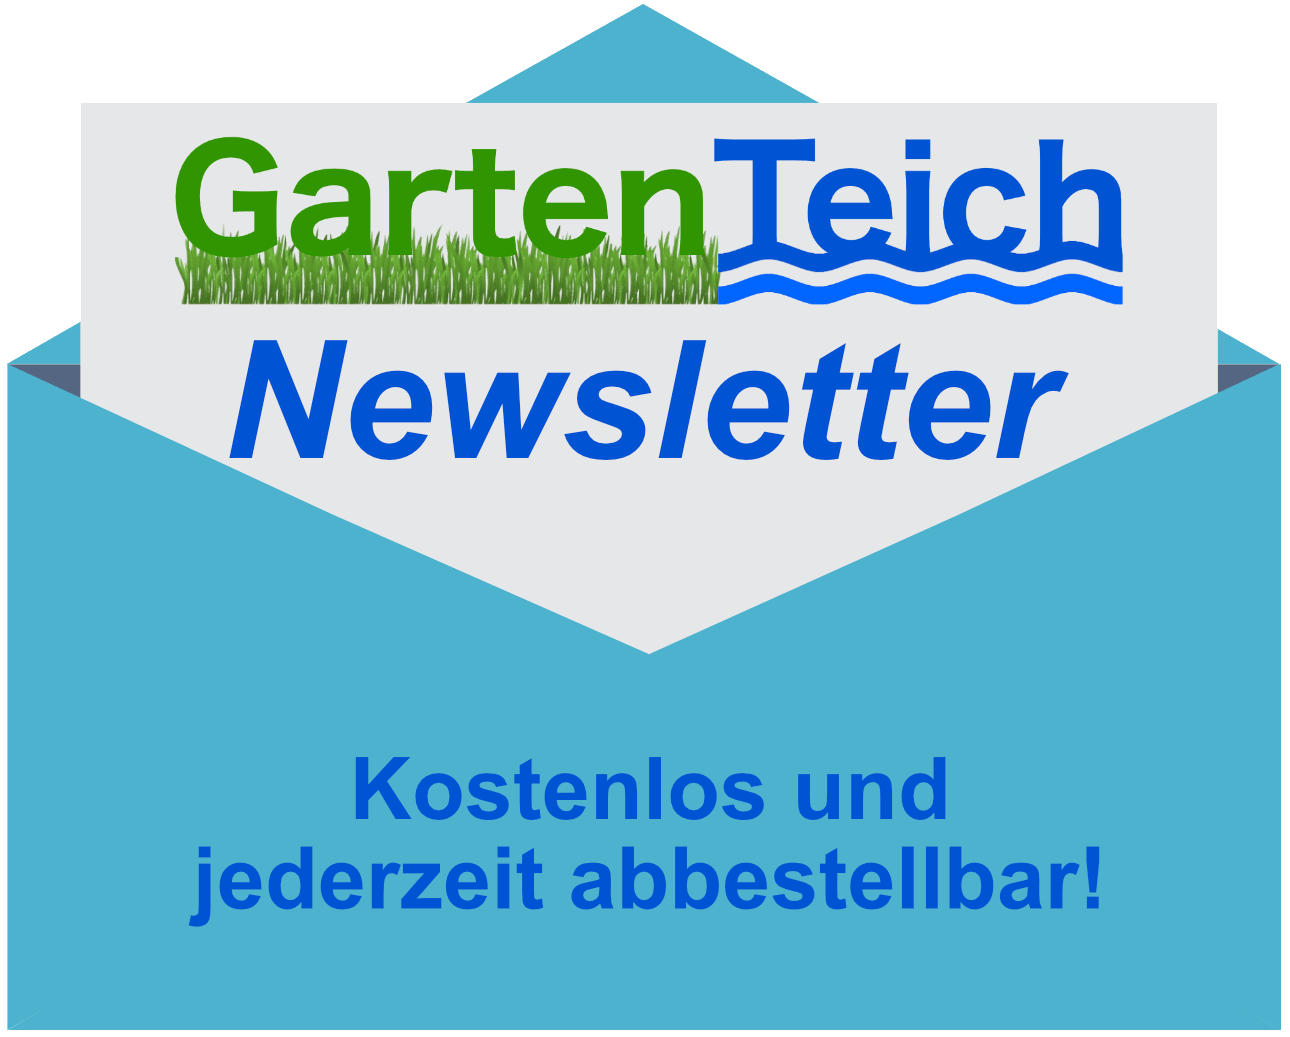 Newsletter GartenTeich